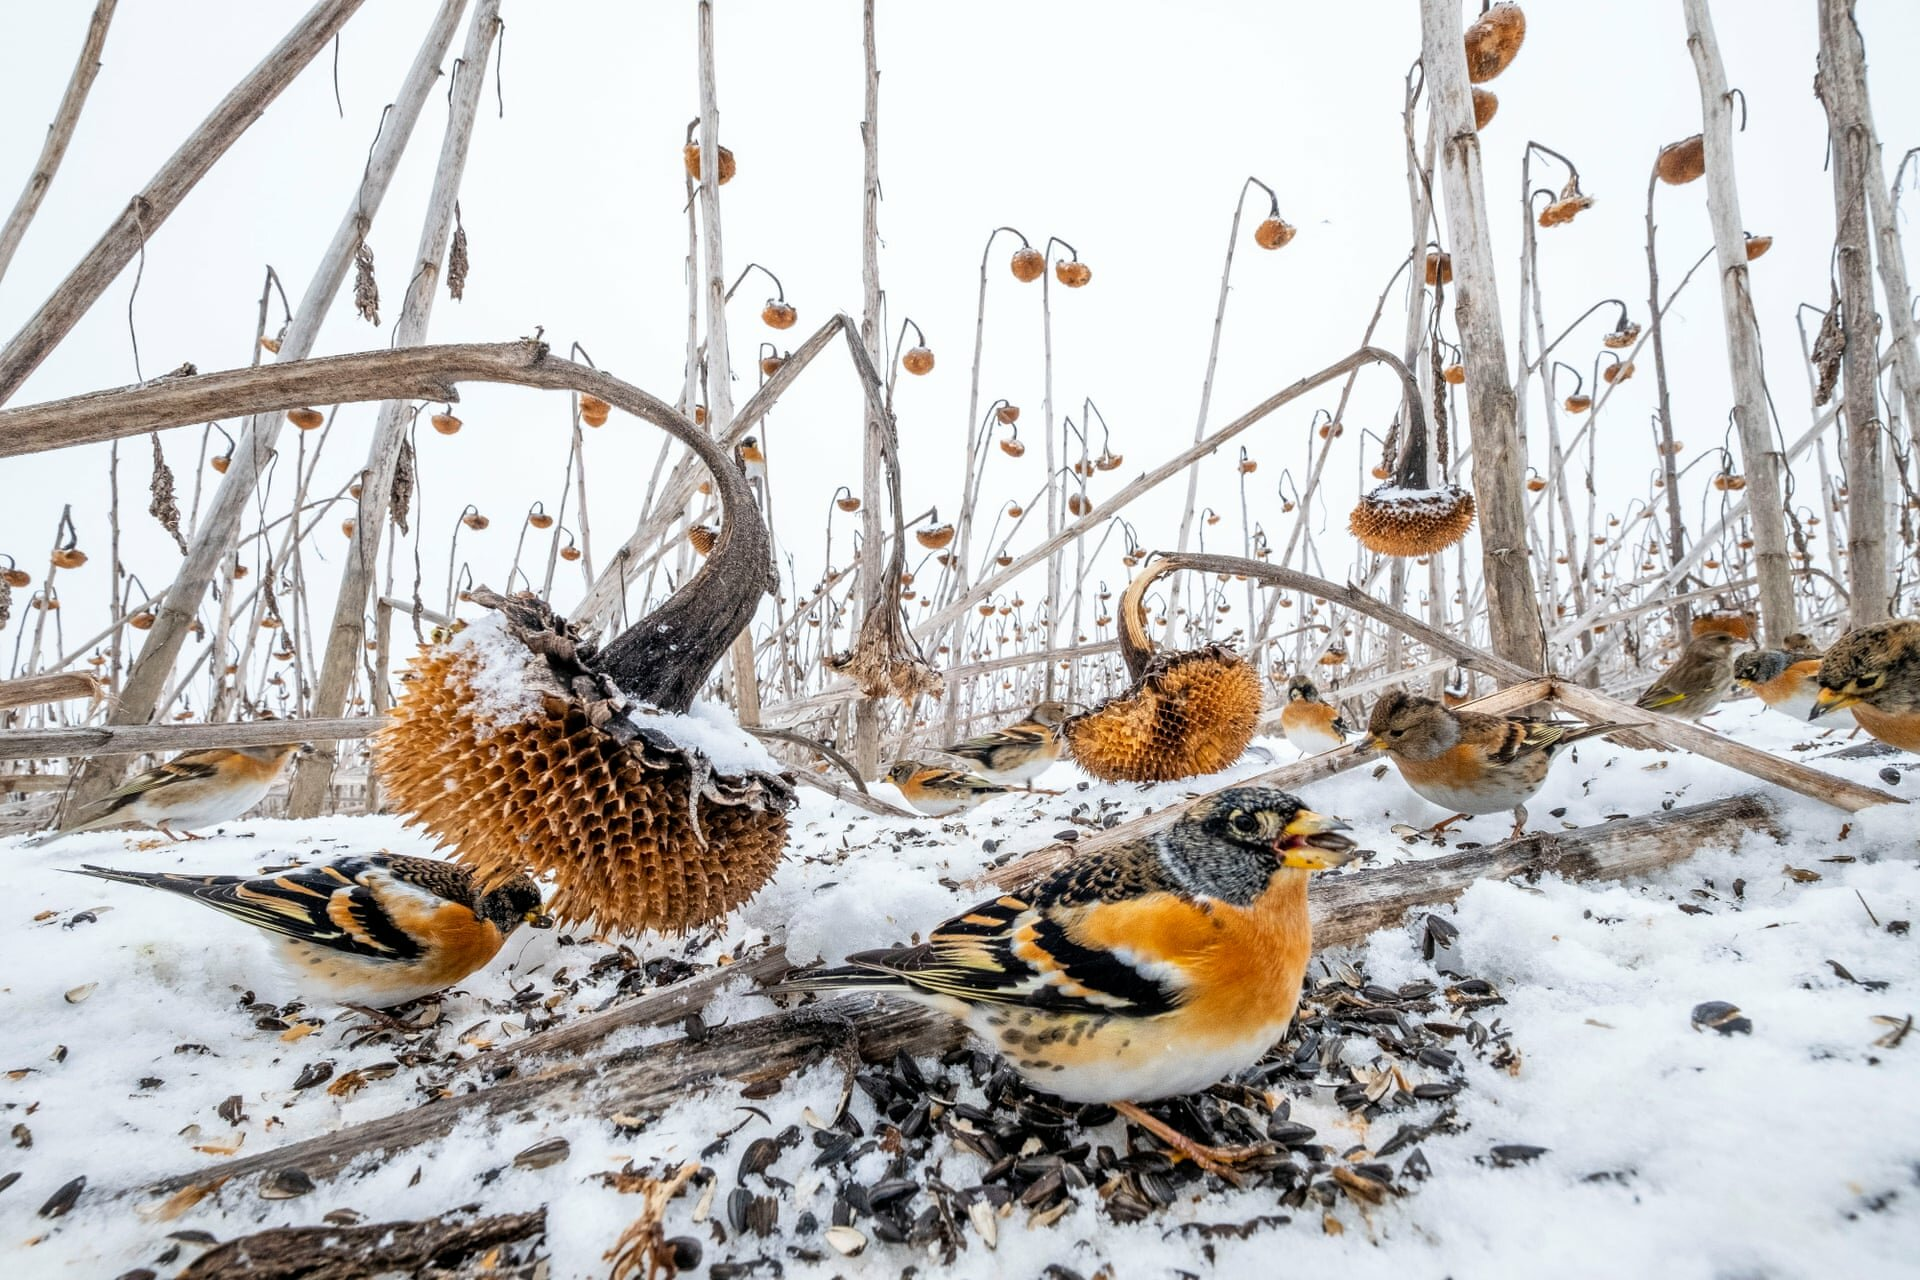 Wildlife second place: Mateusz Piesiak, PolandA large sunflower field, which could not be mowed this year due to the water level, attracted thousands of bird species this winter, mostly greenfinches, goldfinches and bramblingsPhotograph: Mateusz Piesiak/TNC Photo Contest 2021